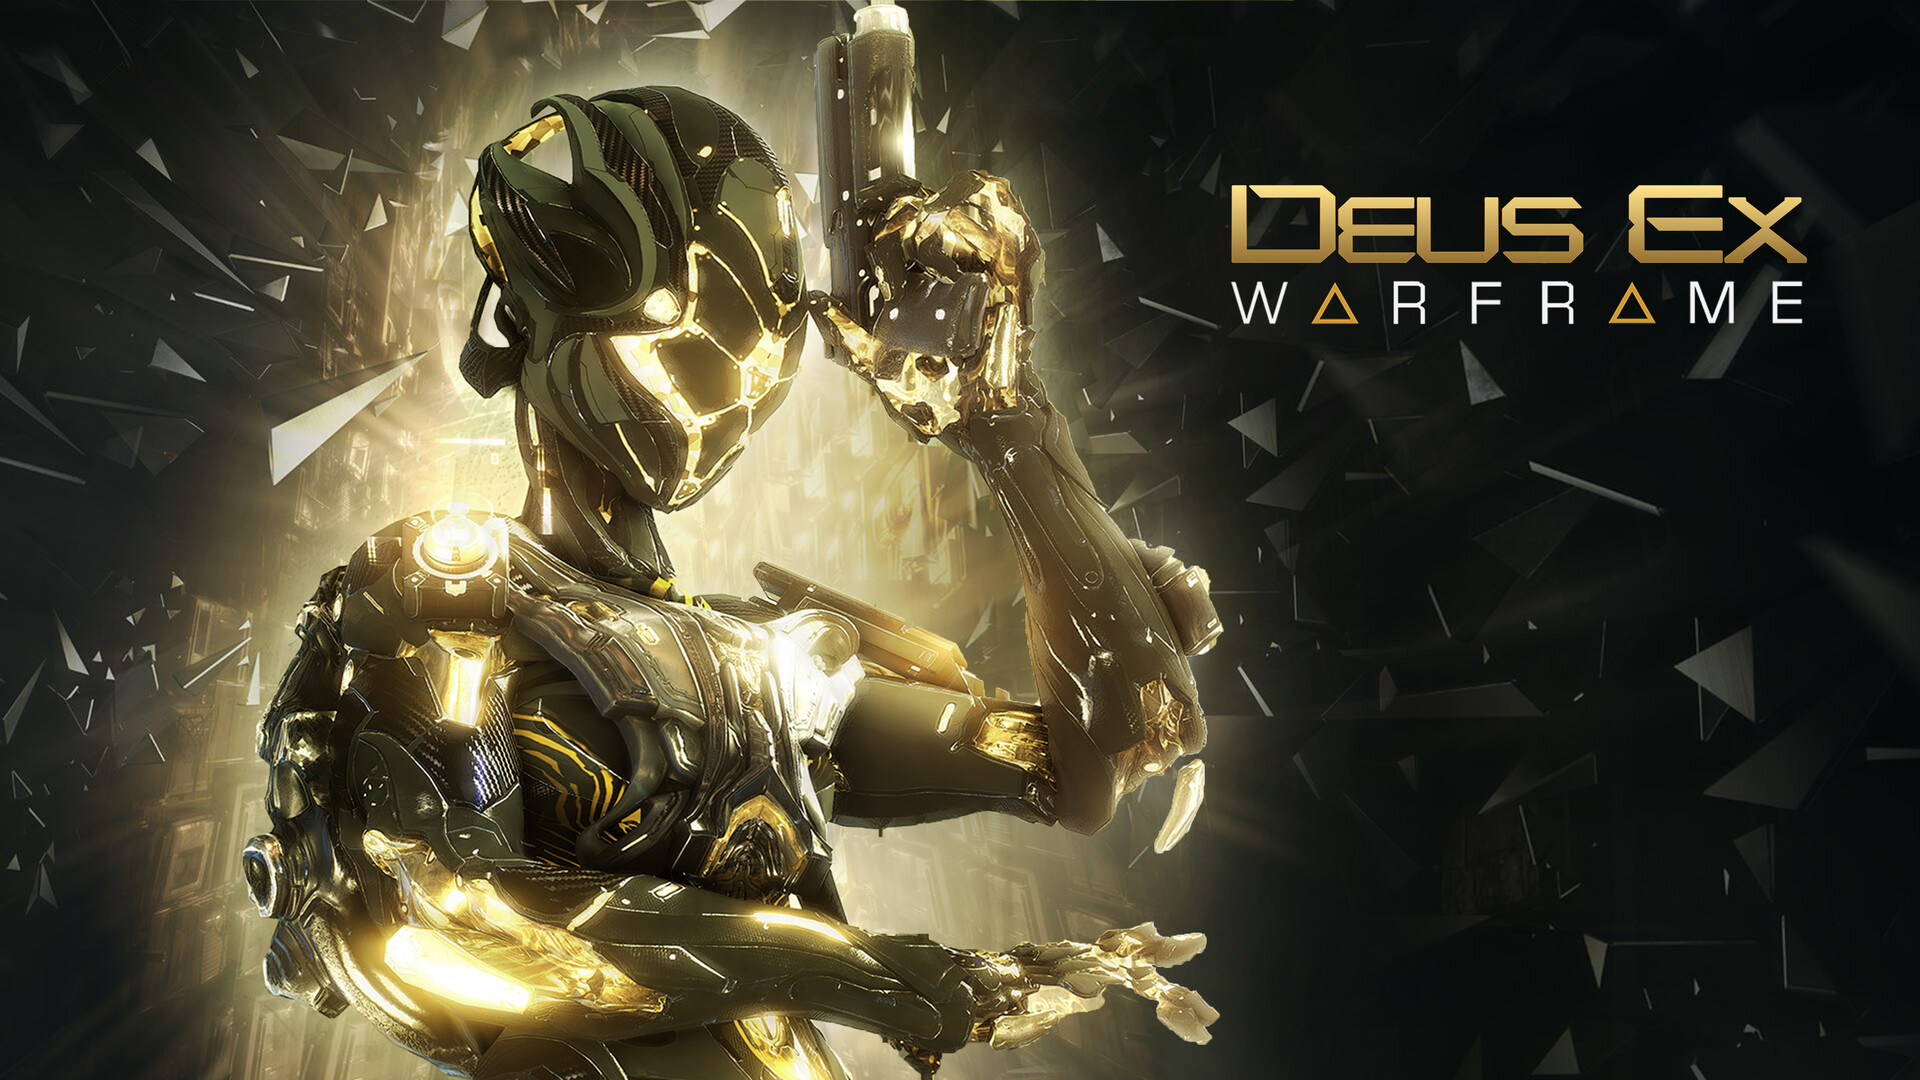 Warframe Nova Wallpaper / Here you can find the best warframe frost wallpapers uploaded by our.